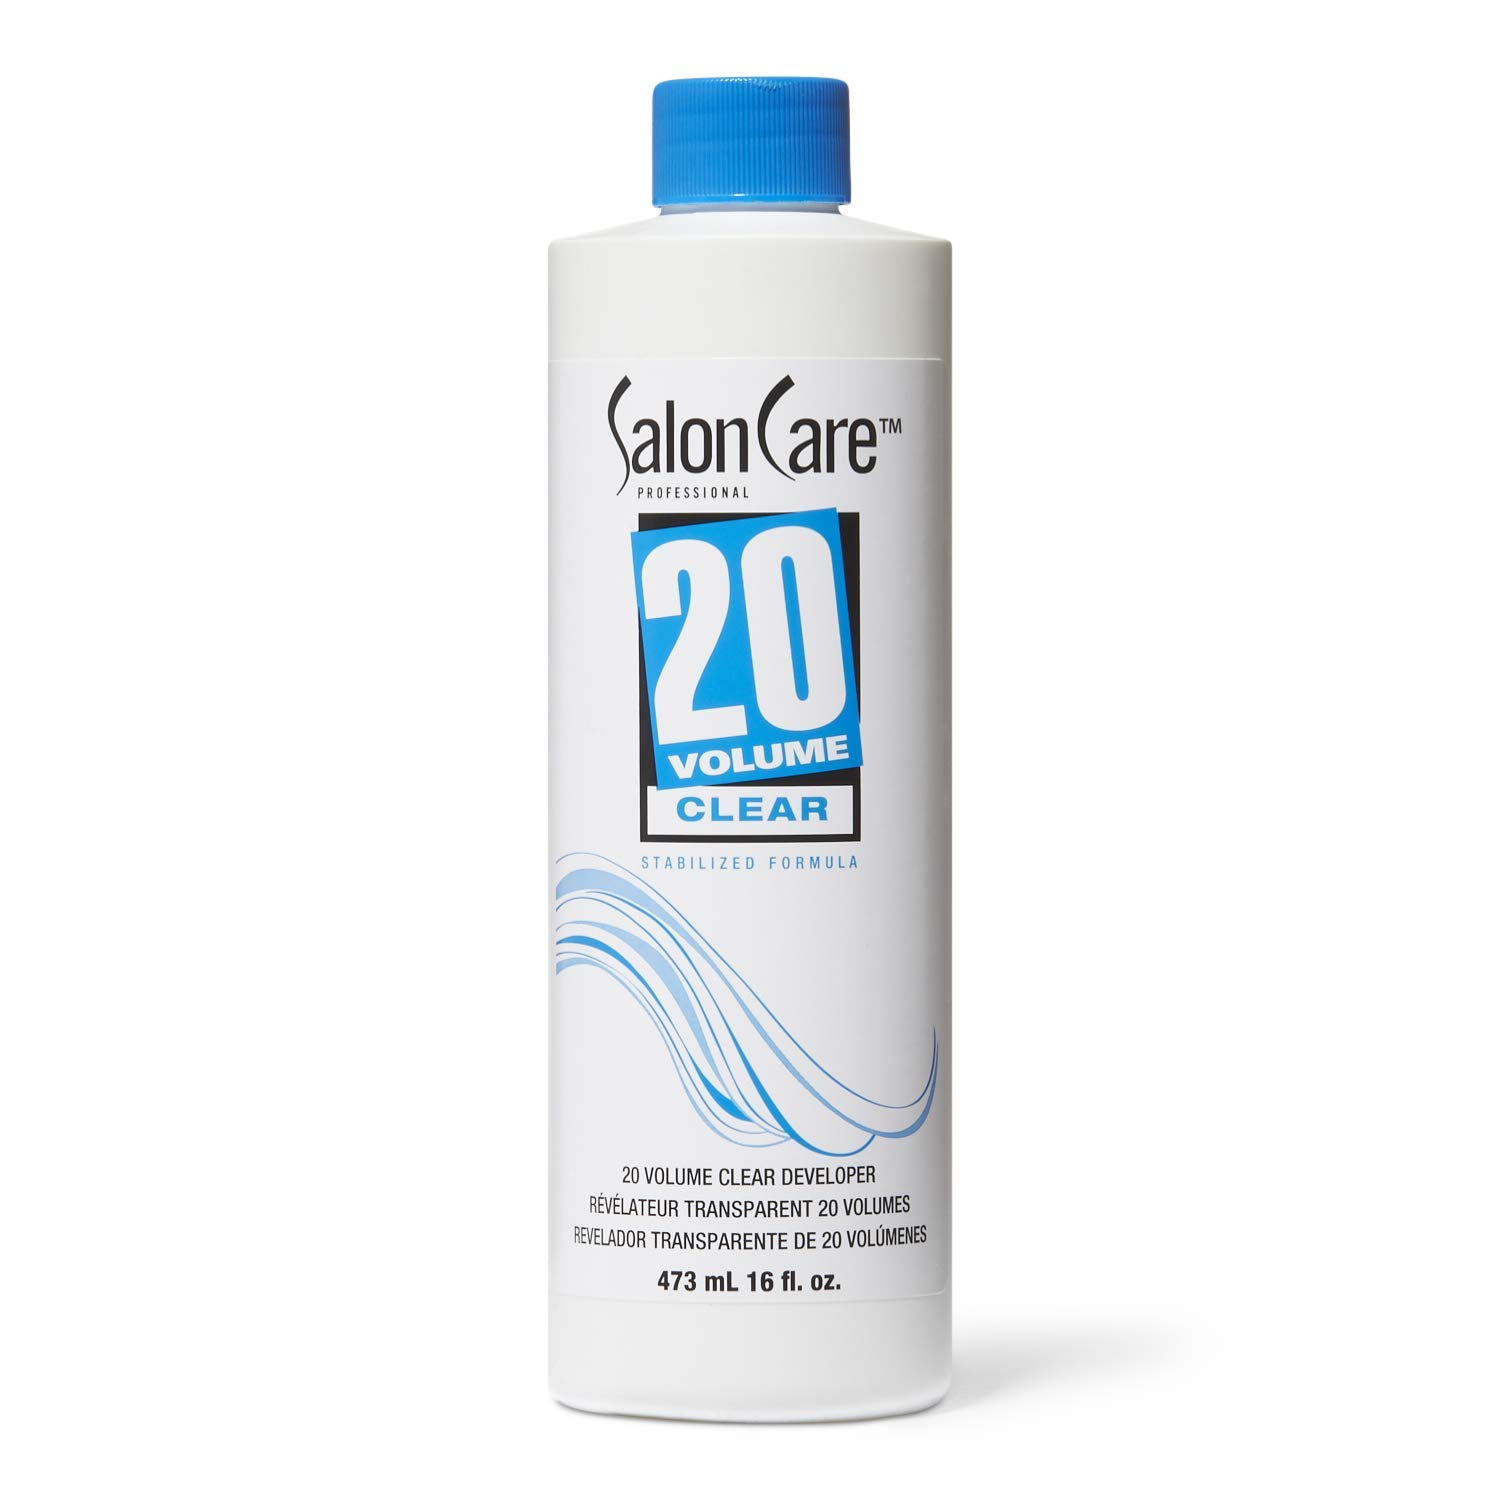 Salon Care 20 Volume Clear Developer